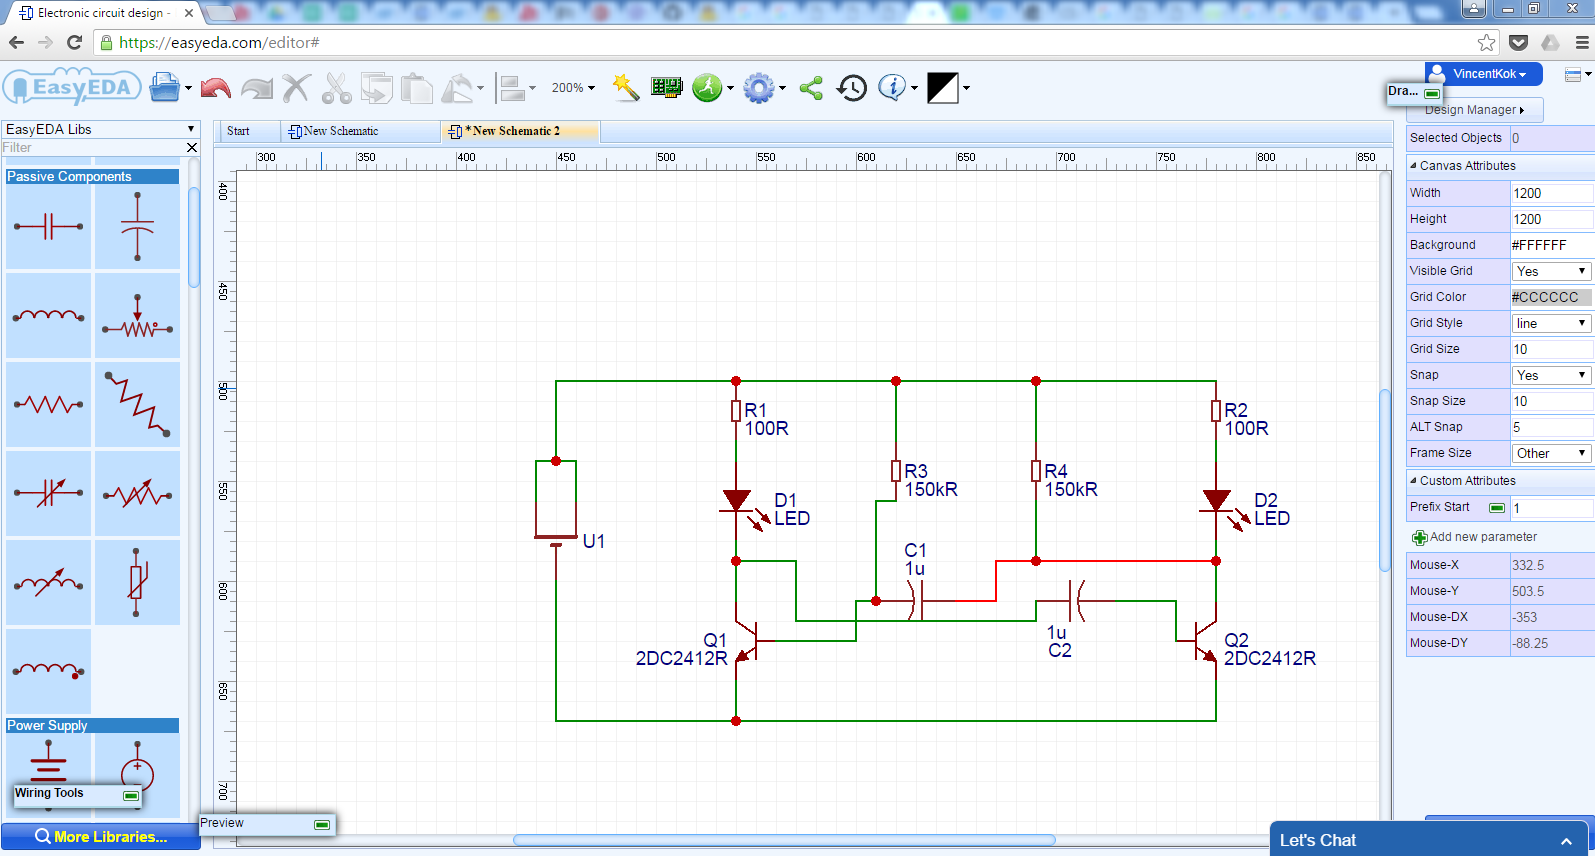 Vinctronics Review Of Easyeda Design Software How To Build Pcb Online Using Web Based Eda Tools Electronic Can Work On My Anywhere From Any Devices Even Ipad Previously I Have Transfer Files Between Different Laptops And It Was